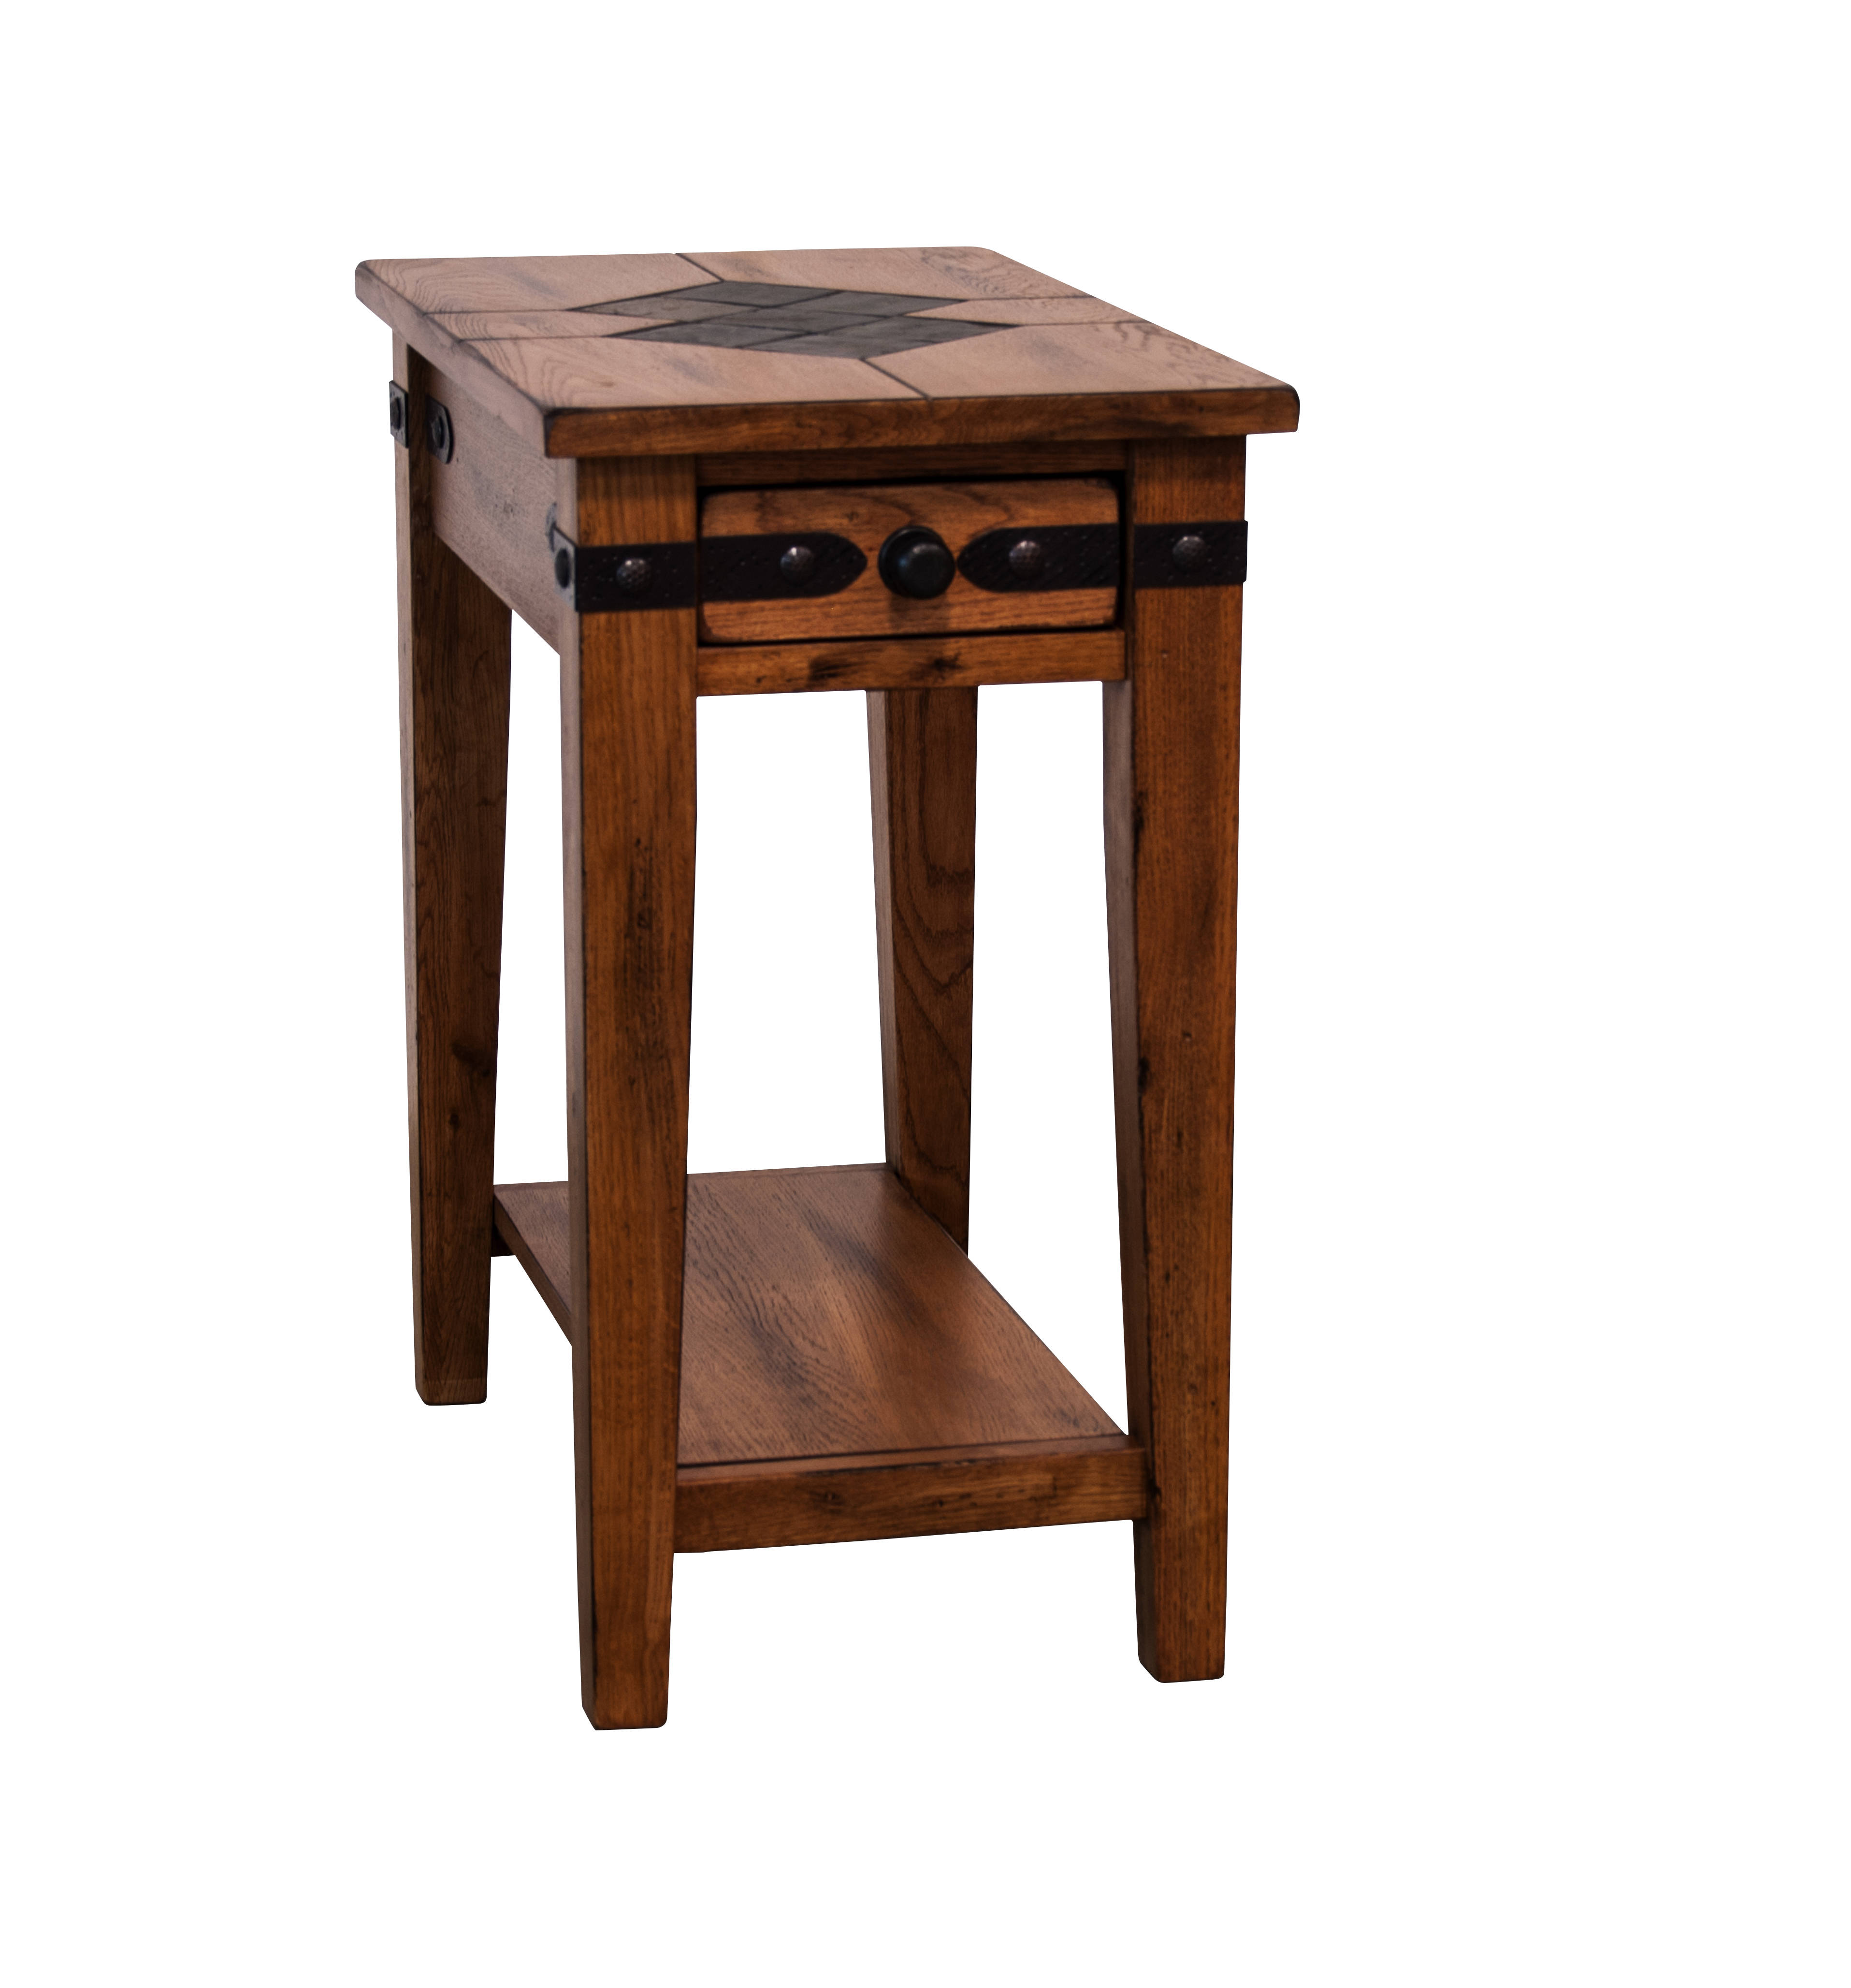 Sunny Designs Sedona Rustic Oak Square Chair Side Table